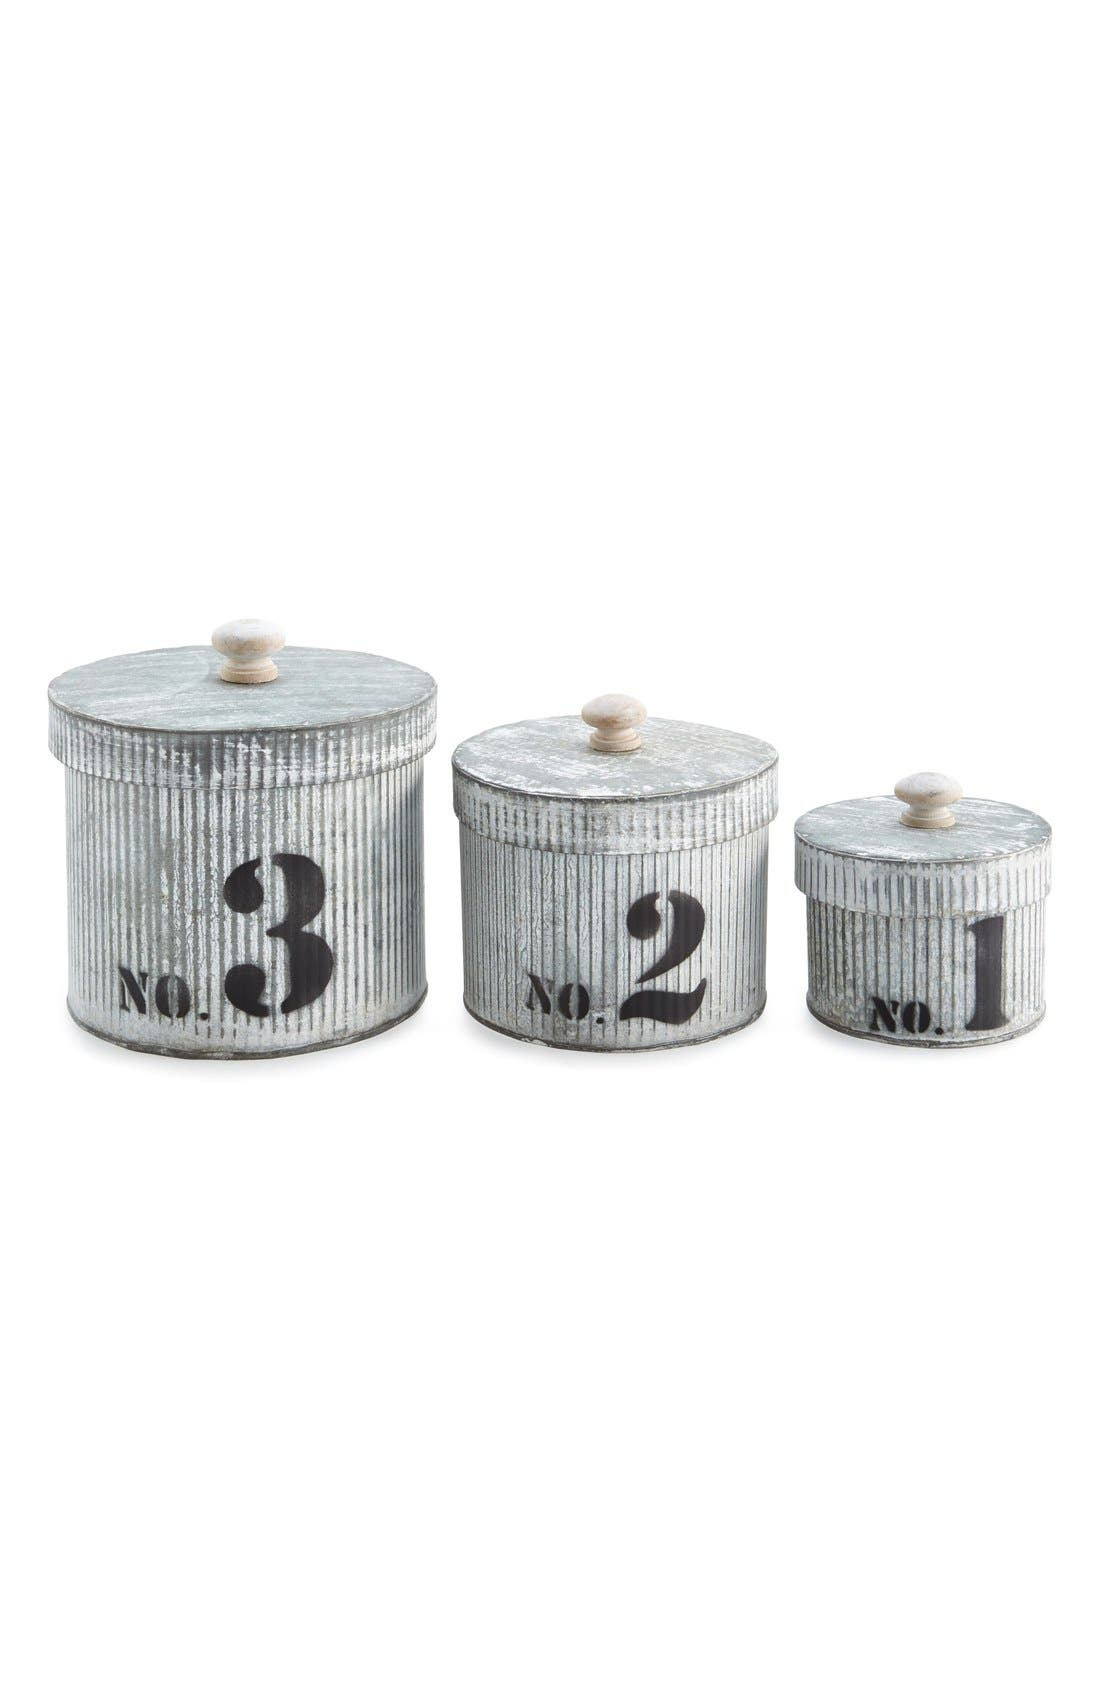 Main Image - Oré Originals Galvanized Metal Bins (Set of 3)